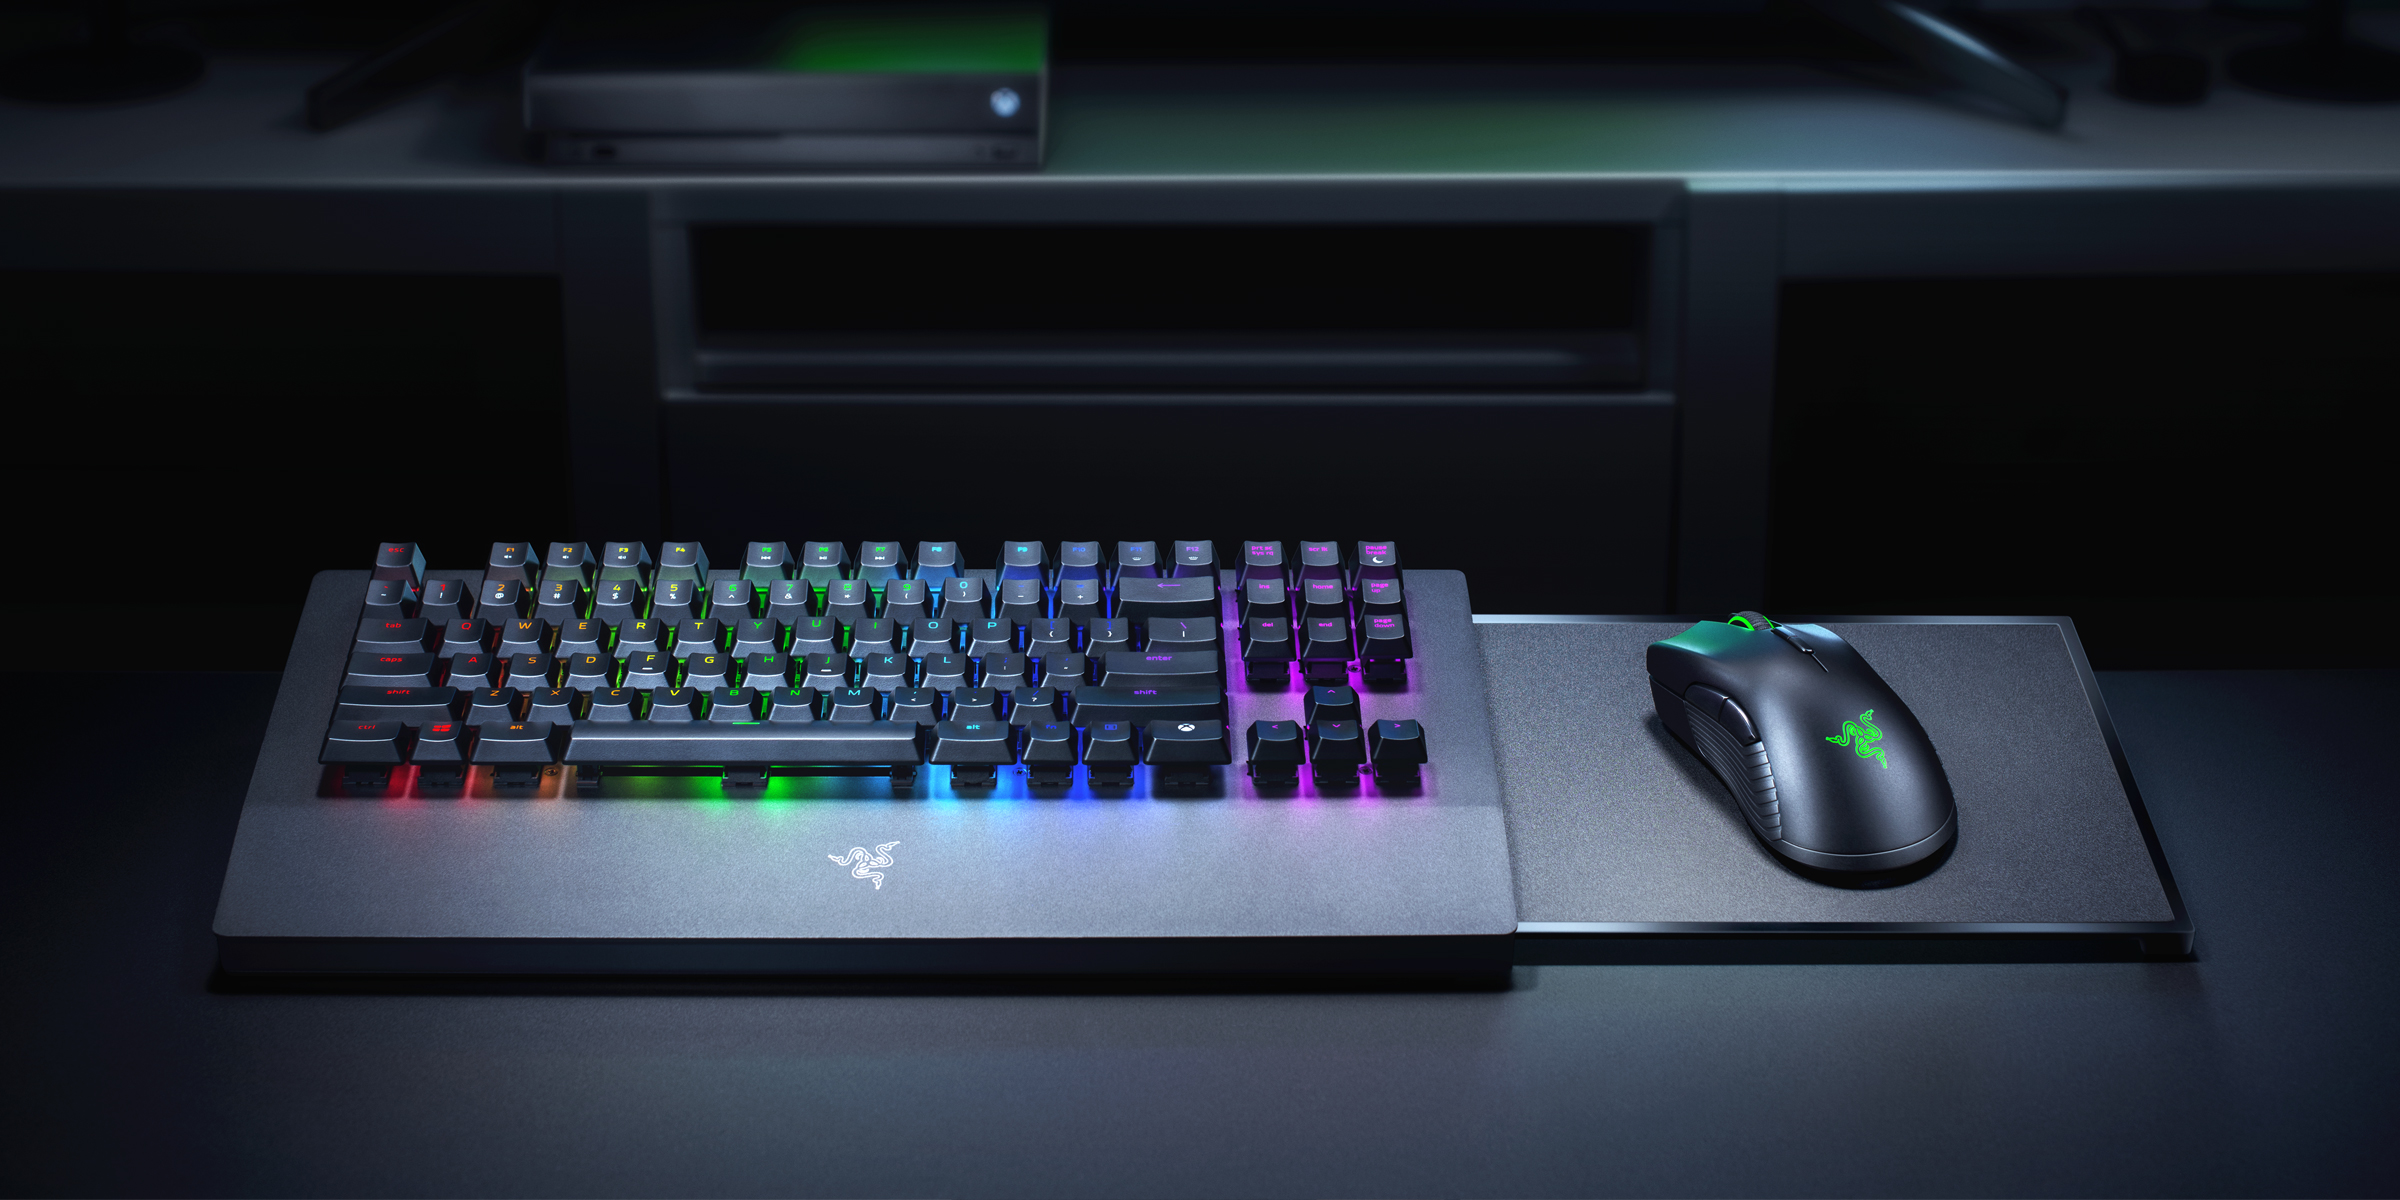 Razer Turret keyboard, zoomed in image of keys